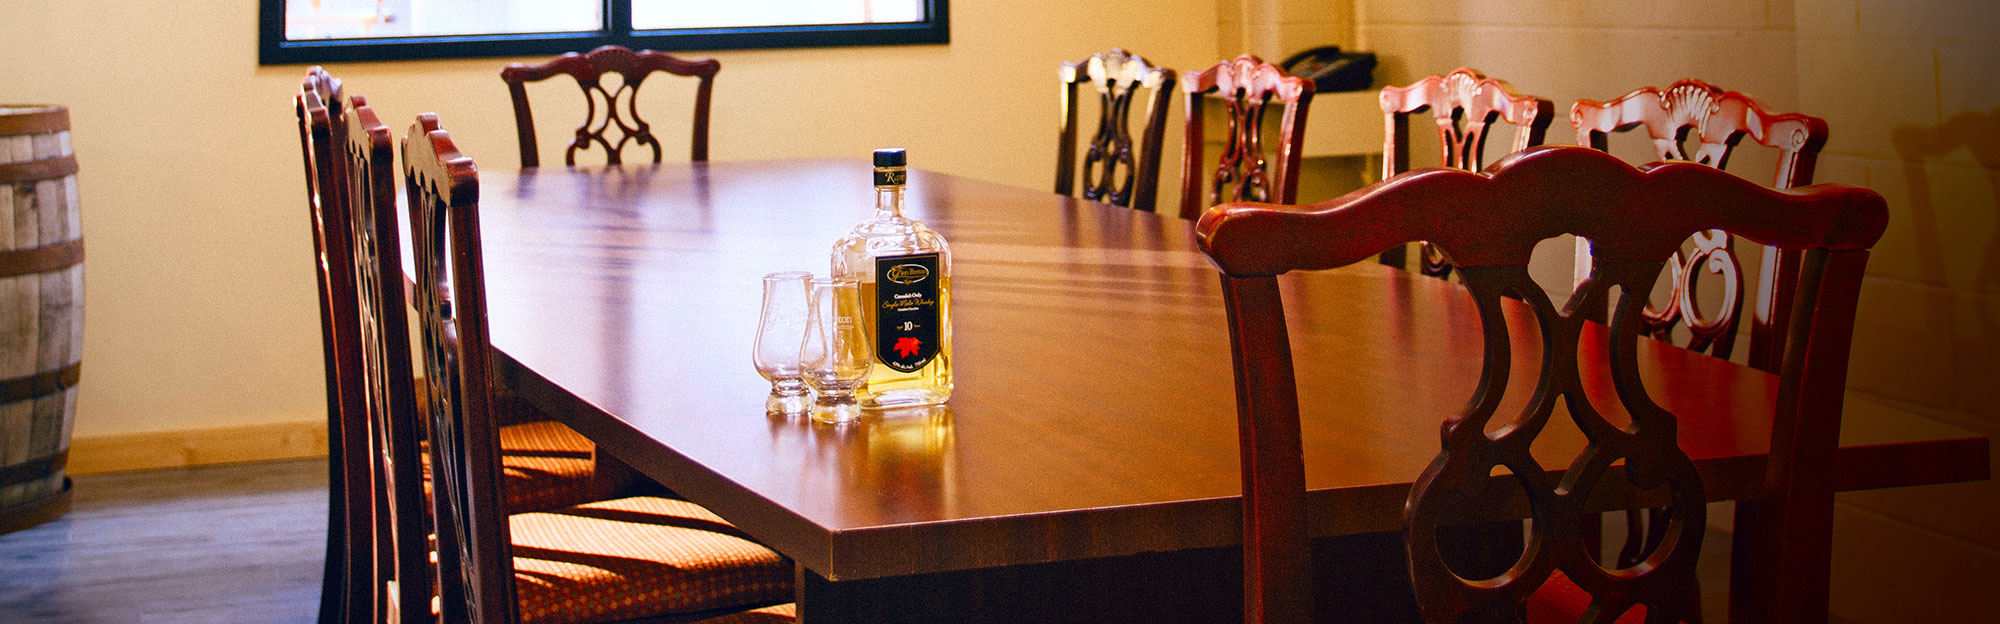 Bring your colleagues. Whisky is a social drink, after all.